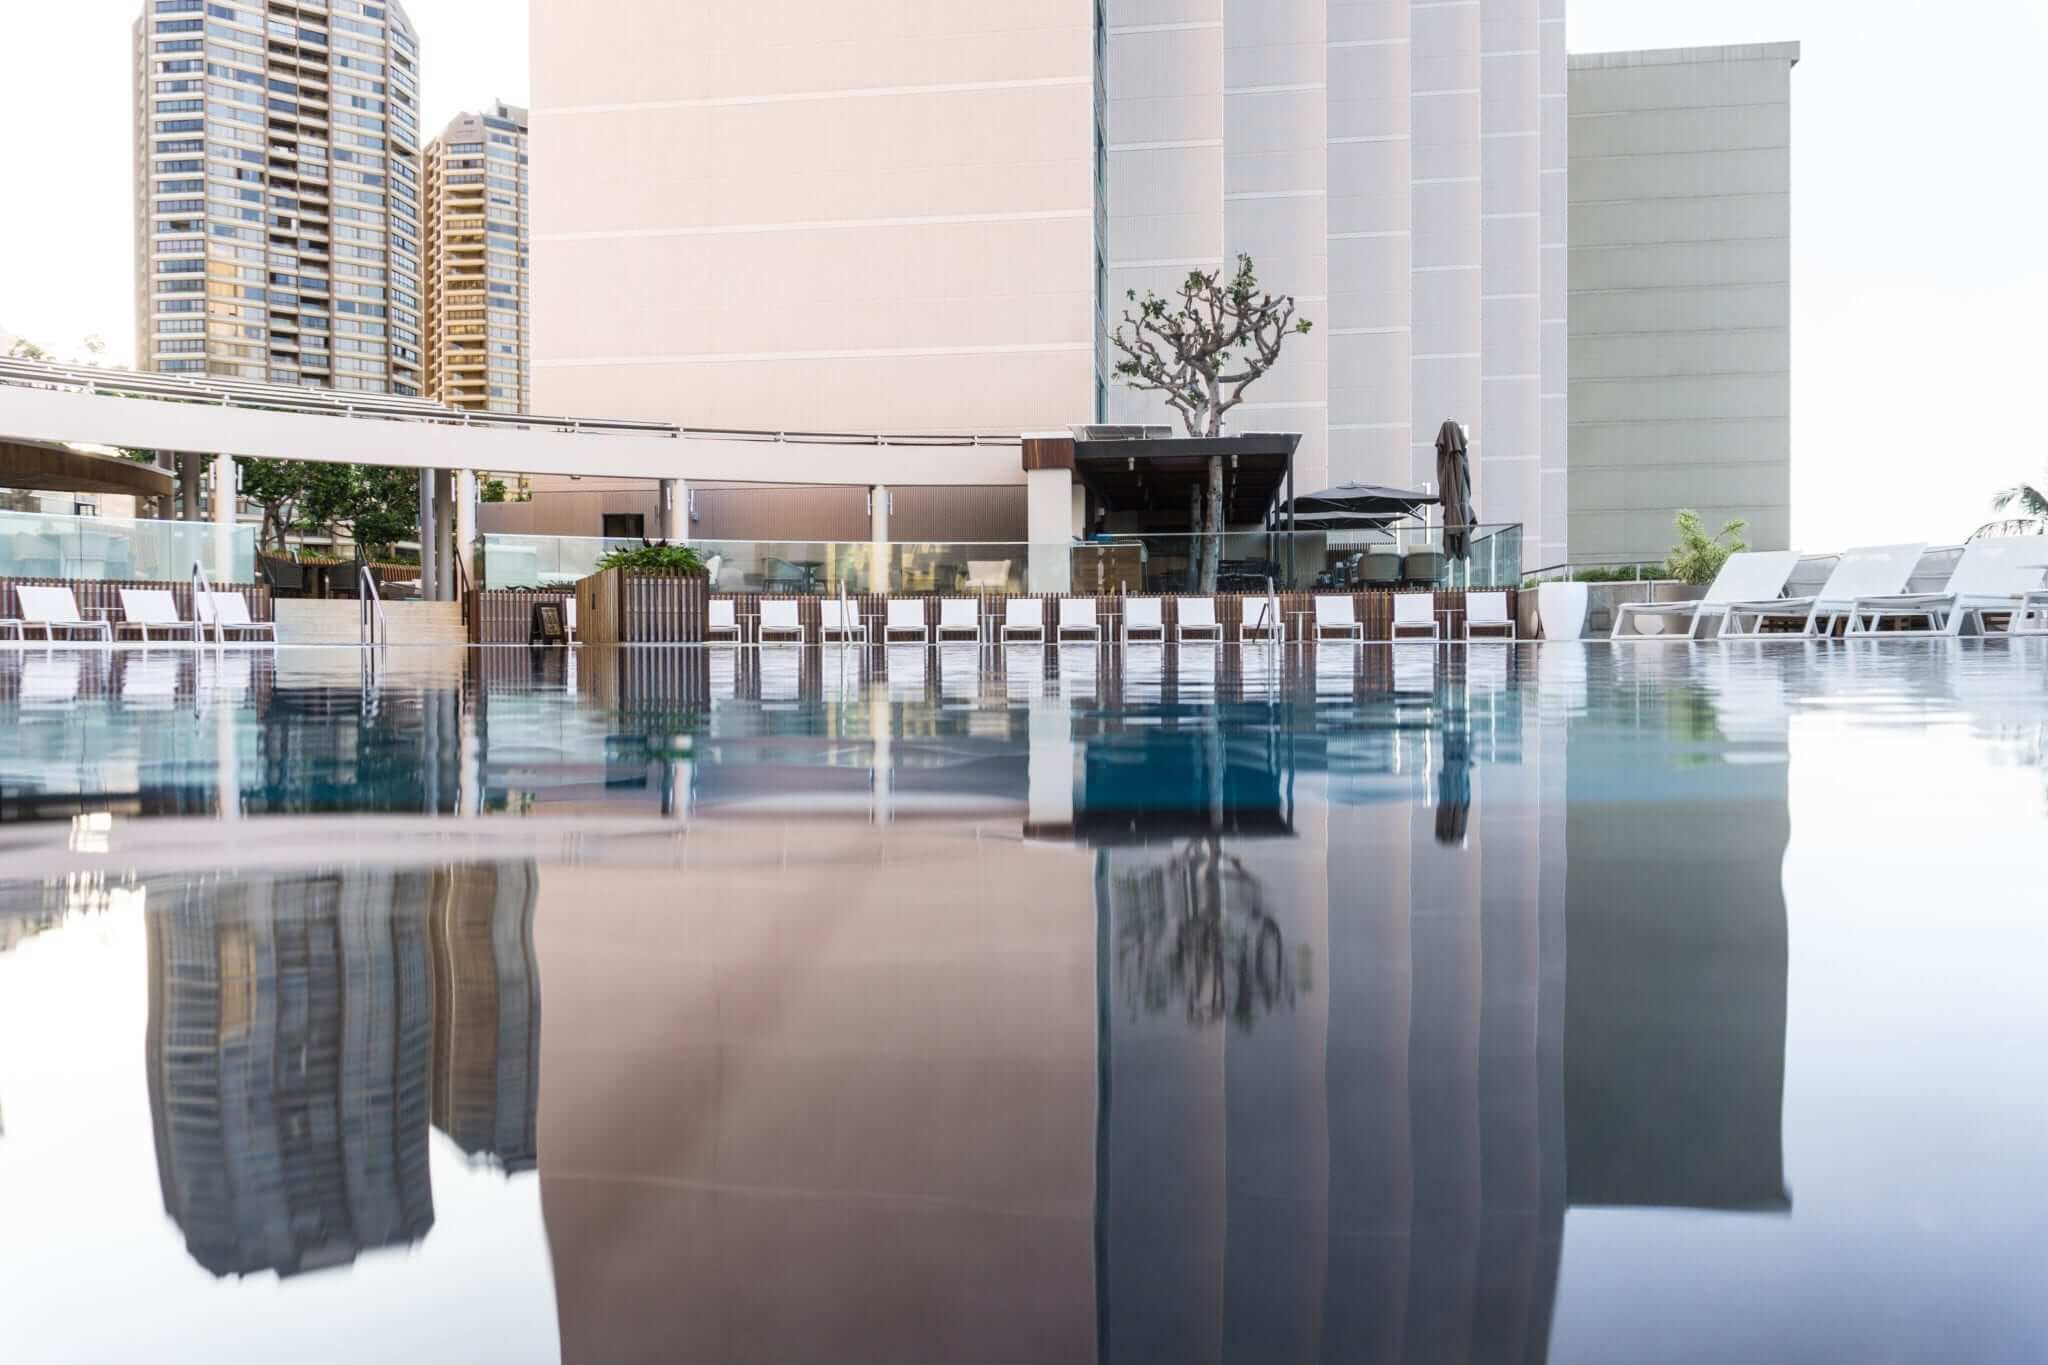 Hotel pool with water reflected.